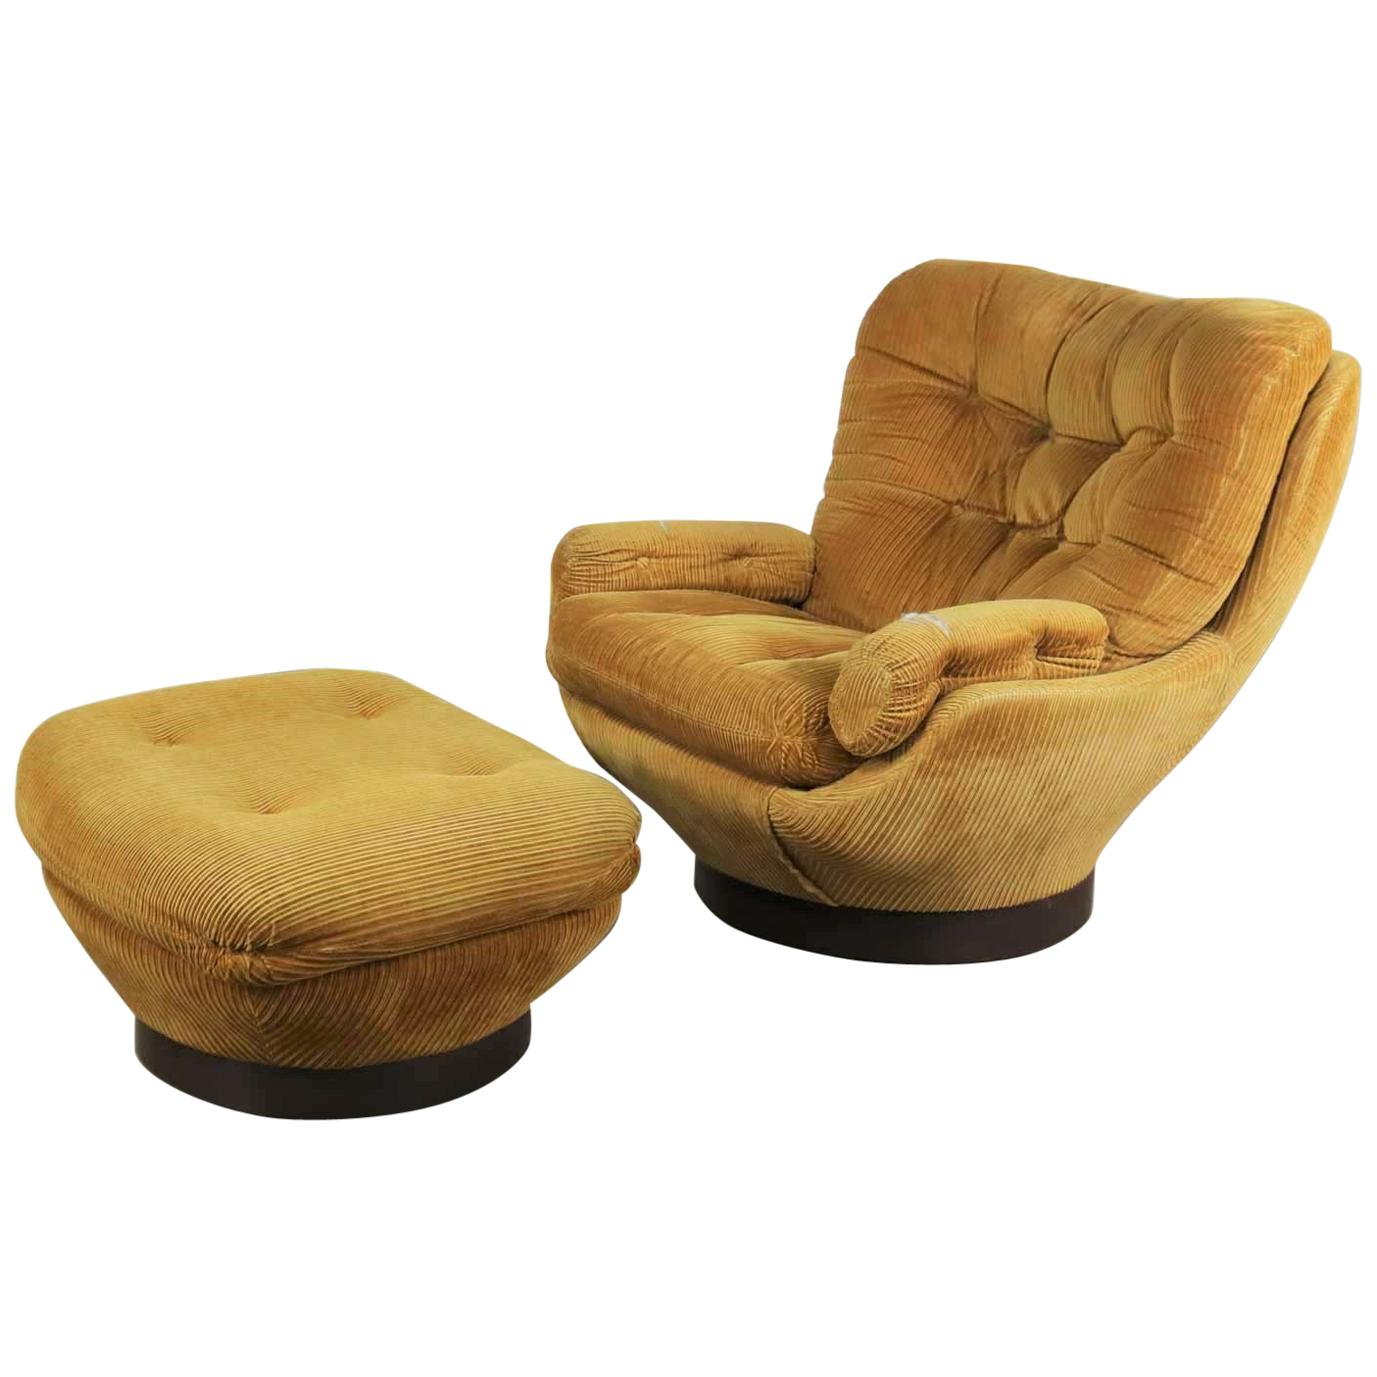 Vintage Swivel Chair Vintage Modern Selig Swivel Chair And Ottoman Style Of Joe Columbo Elda Chair